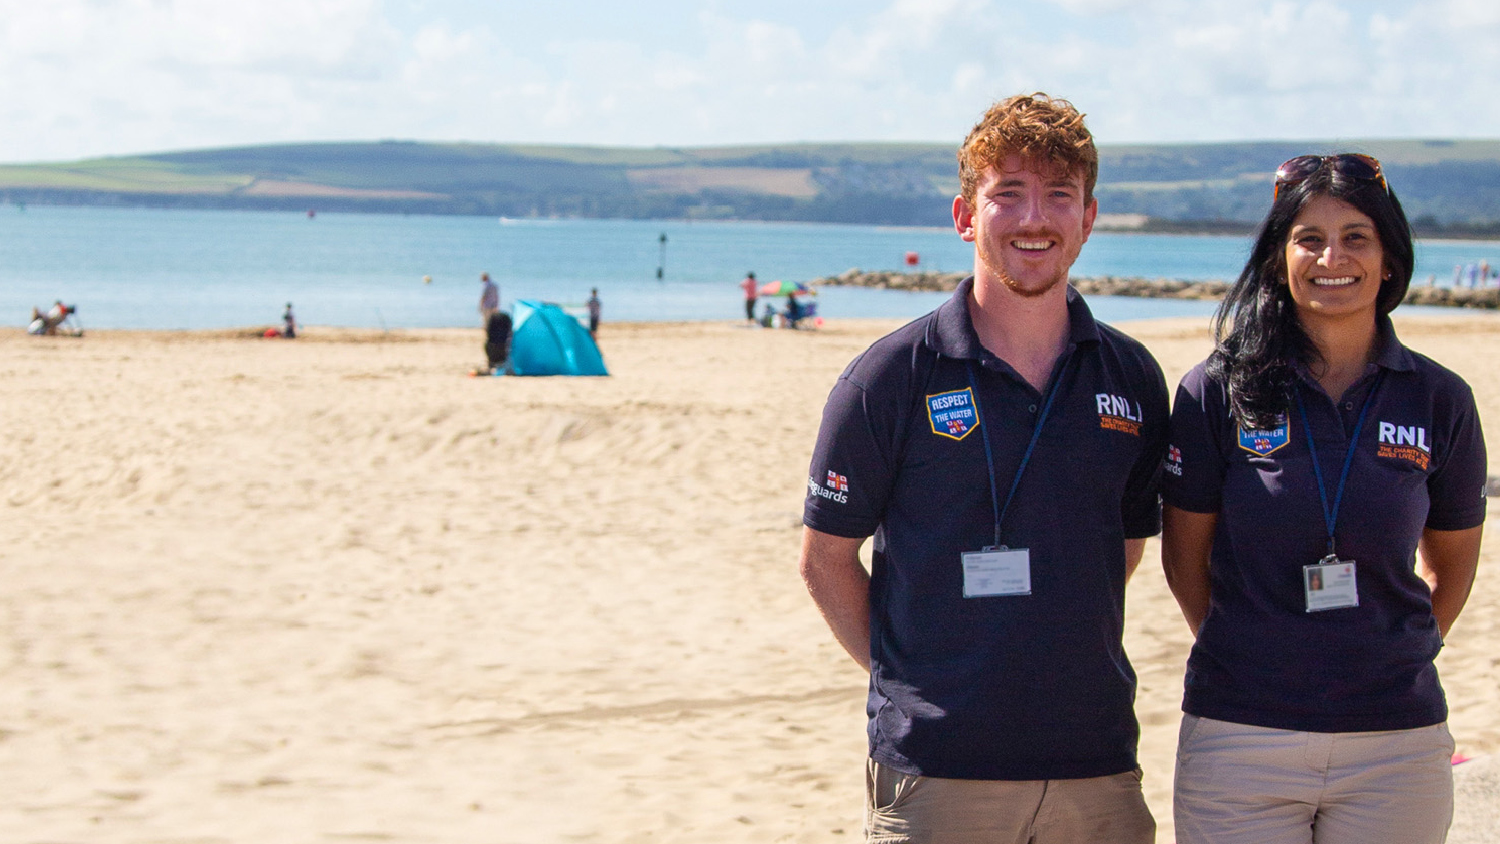 Two RNLI face to face fundraisers on a beach